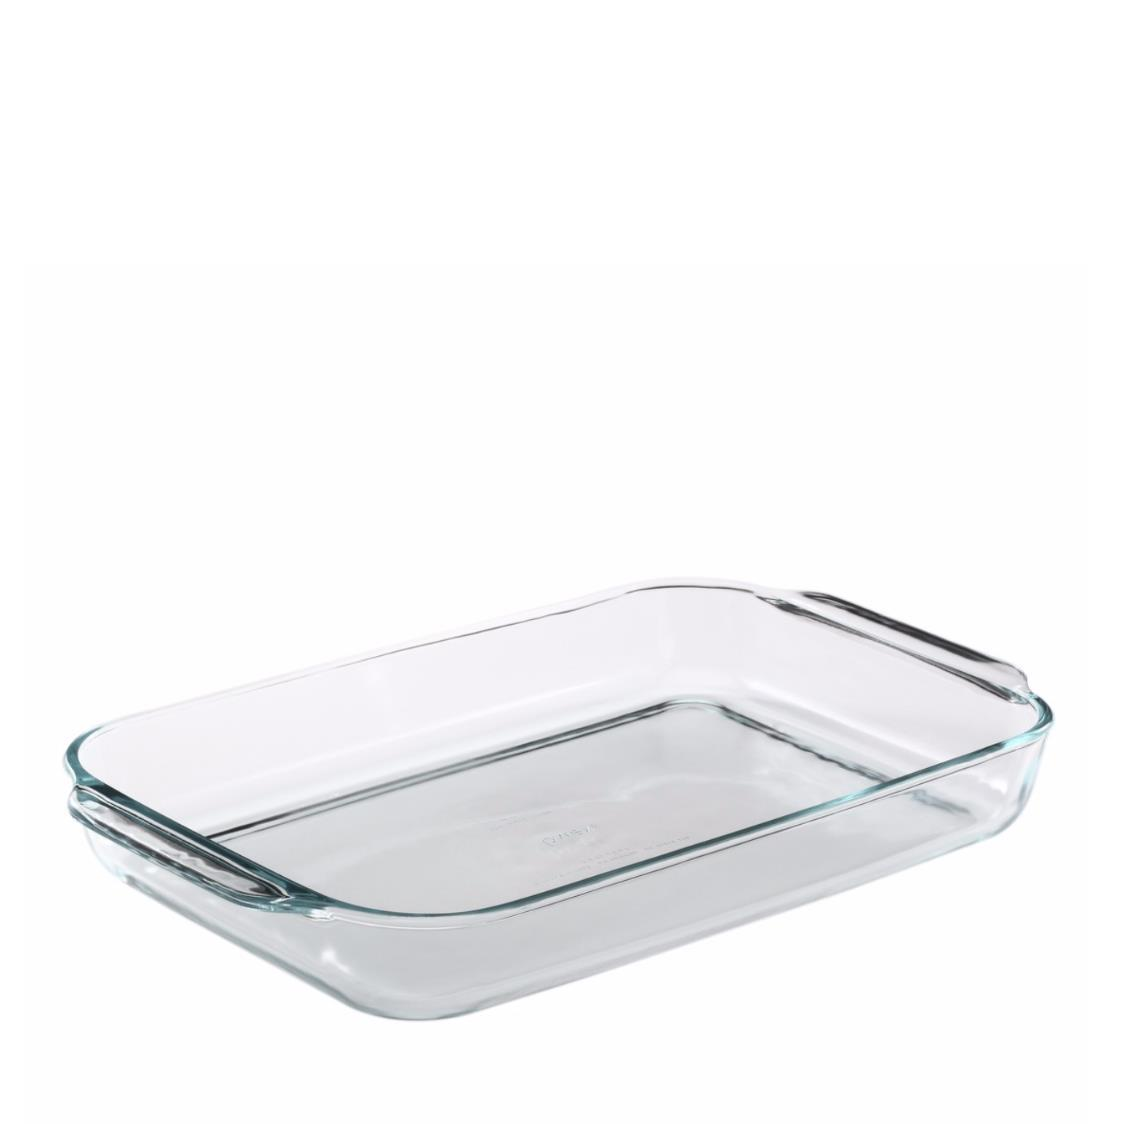 Pyrex Oblong Baking Dish